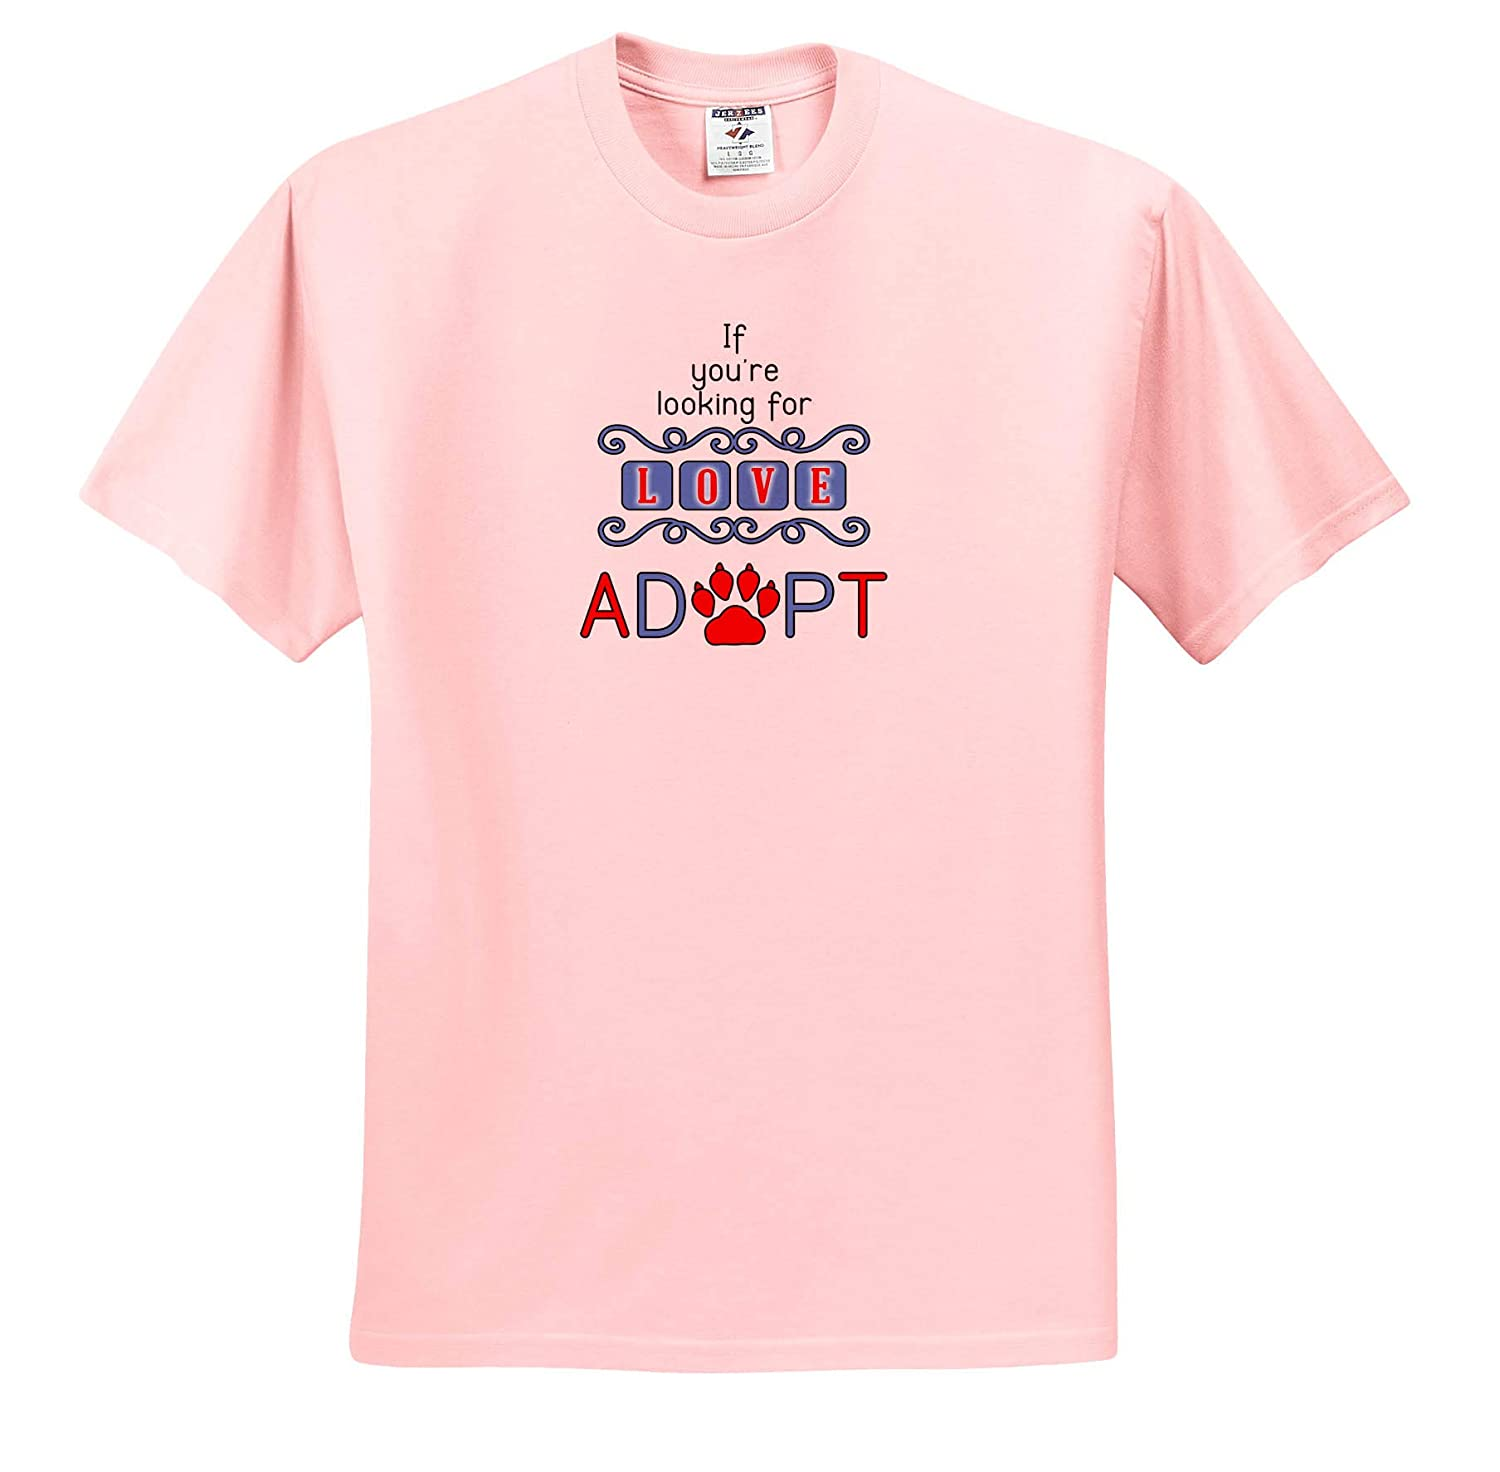 ts/_310183 If Youre Looking for Love Adopt Pet Love Red Blue and White Adult T-Shirt XL 3dRose Doreen Erhardt Dogs